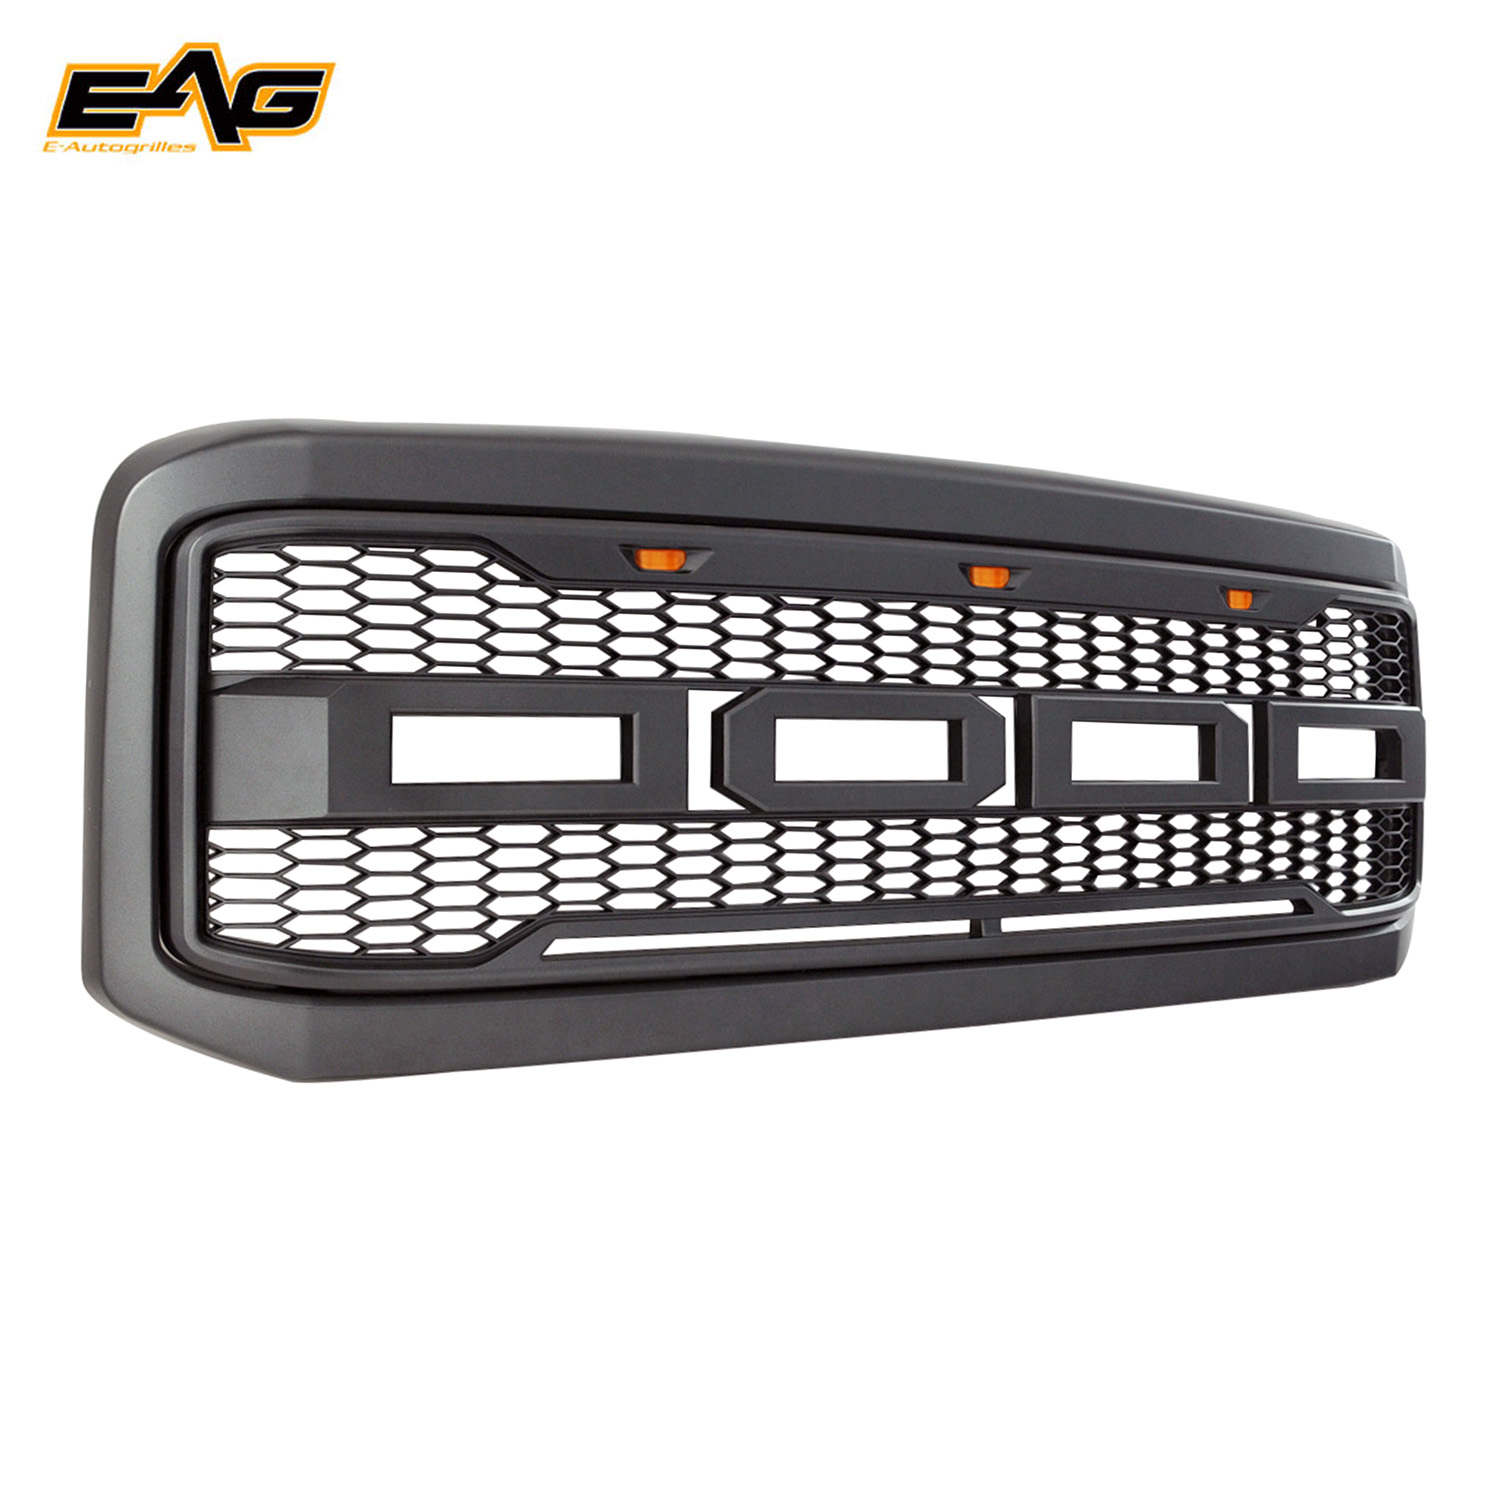 Eag Raptor Conversion Replacement Grille For 2005 2007